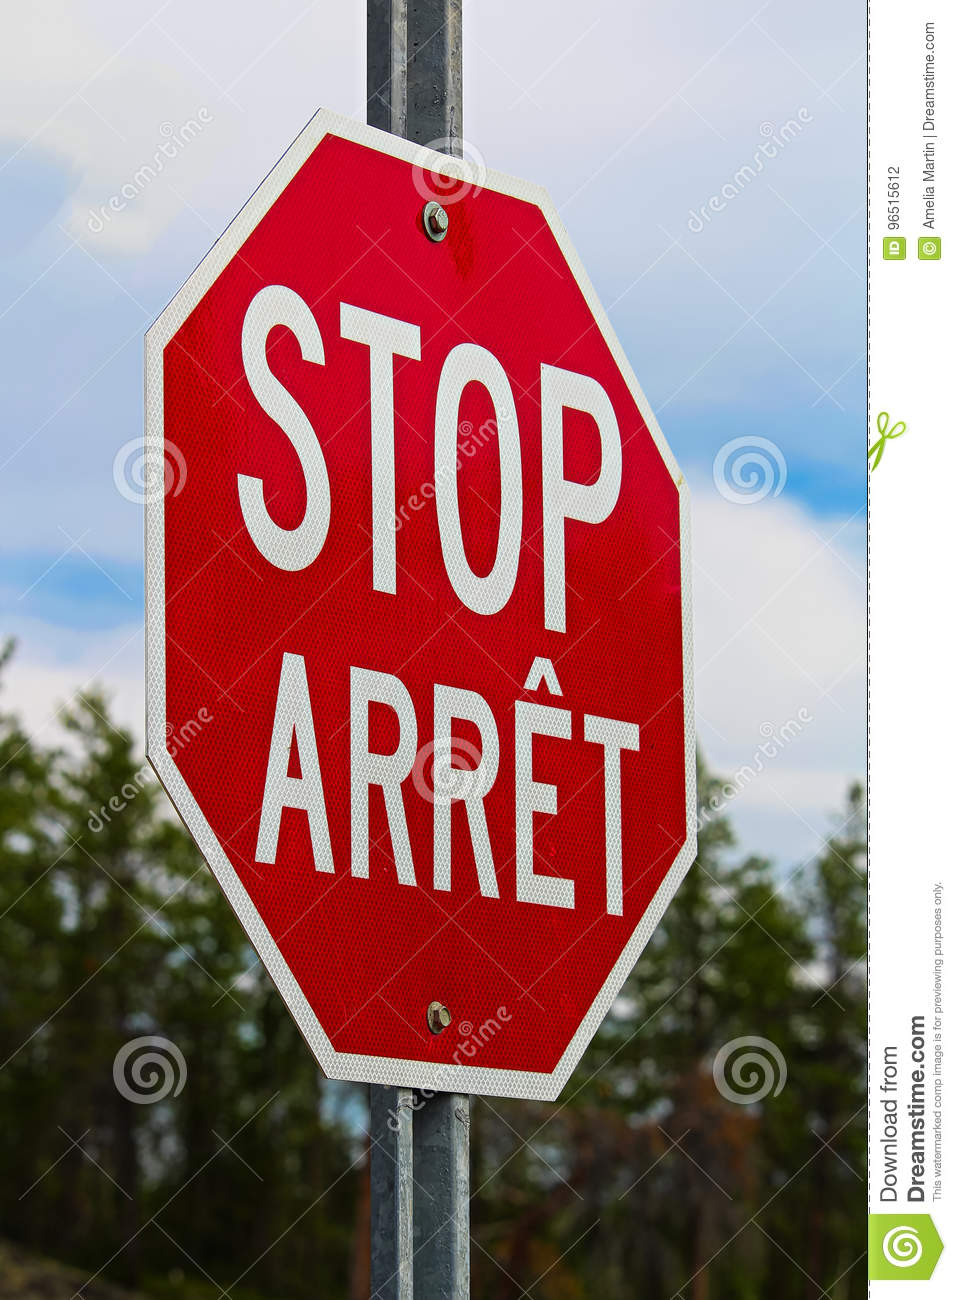 A stop sign written in both english and french